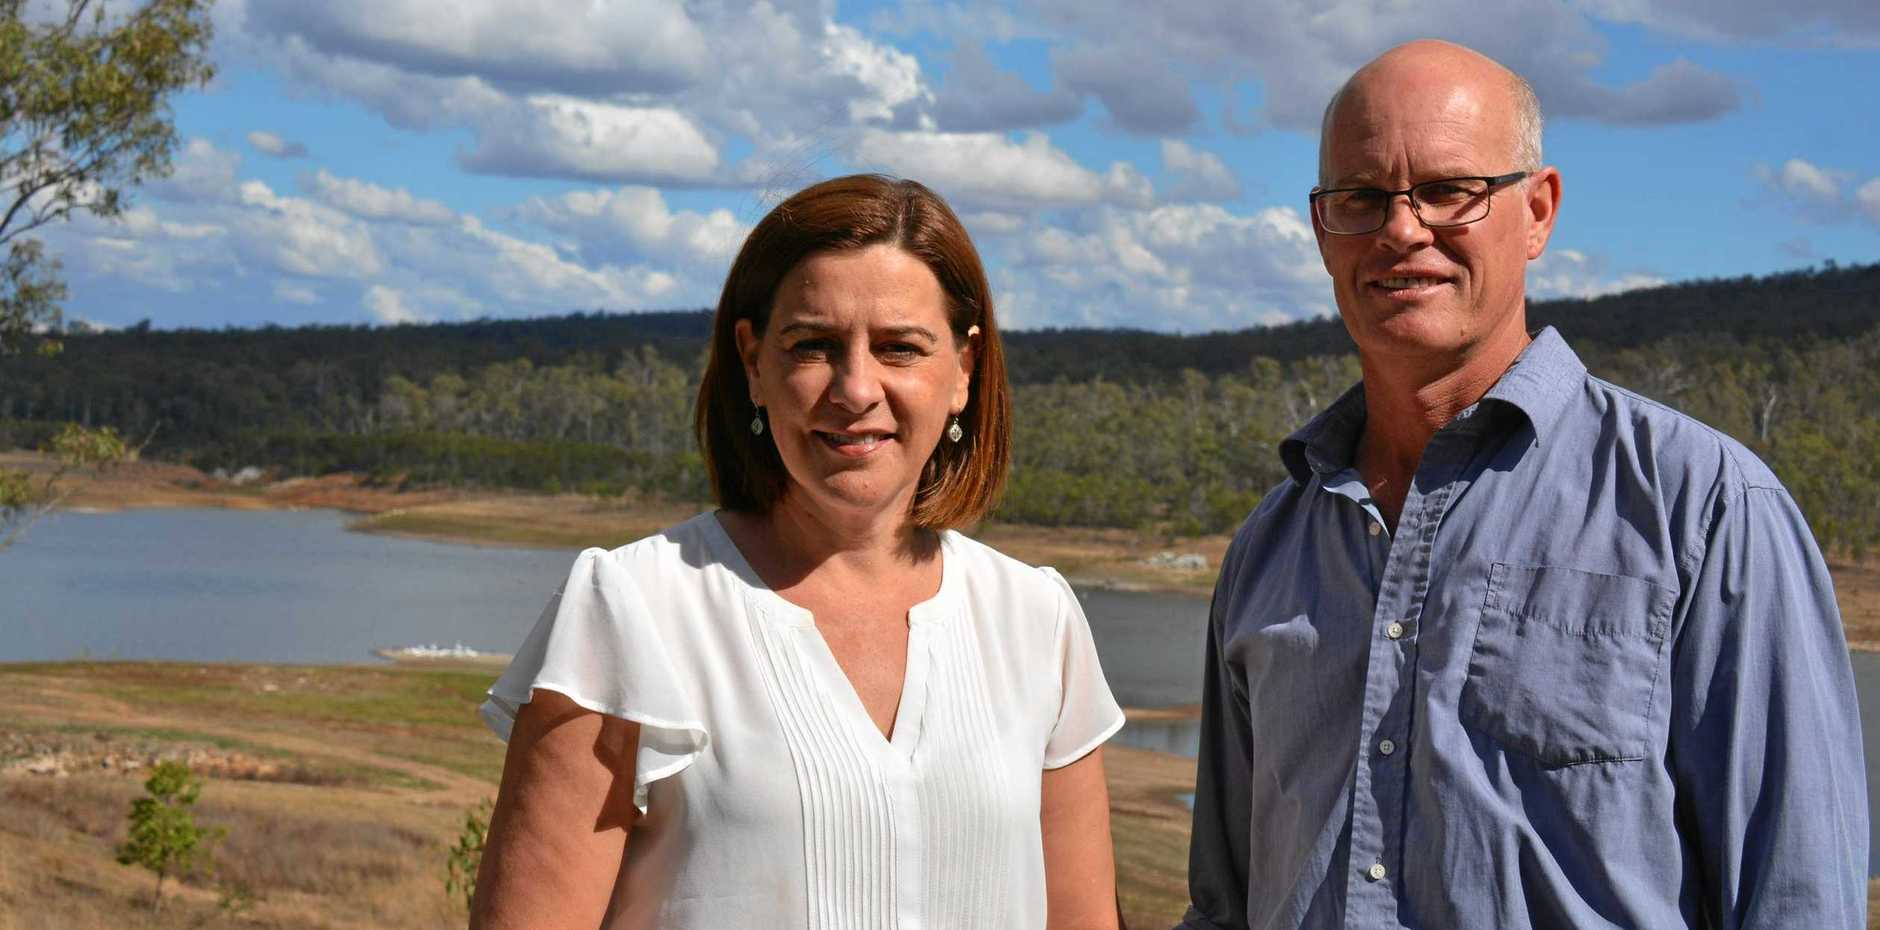 NO RELIEF: Nanango member Deb Frecklington and Chairman of the Irrigator Advisory Comittee Stuart Nicholson are concerned about the low levels at Bjelke Petersen Dam.